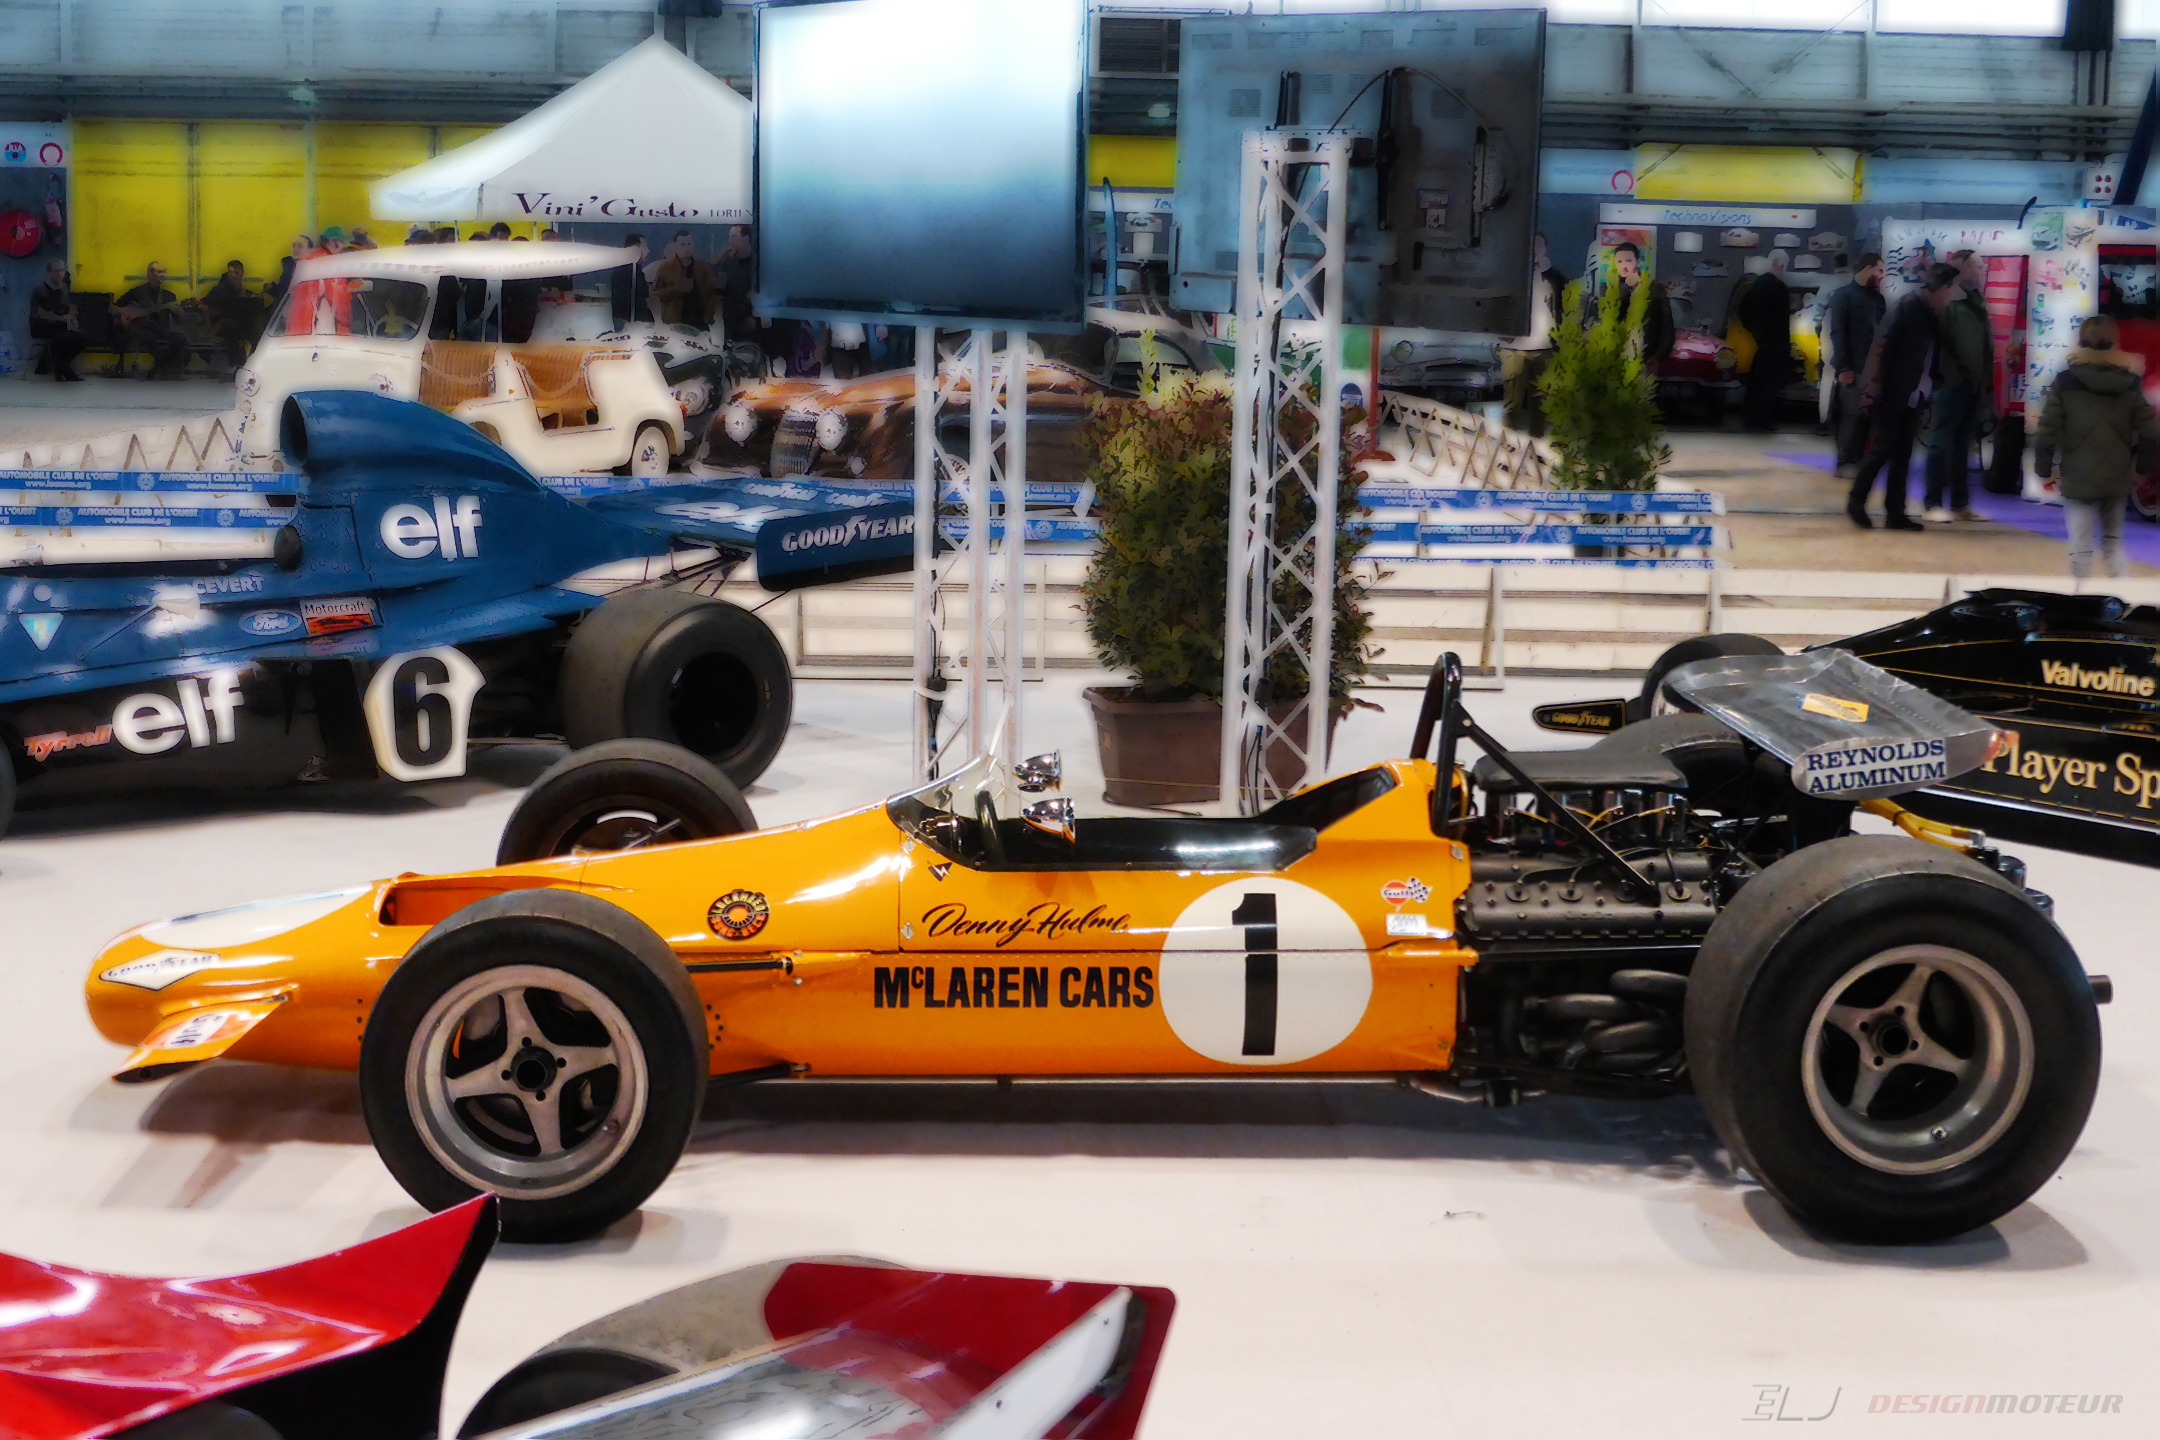 McLaren M7A - 1968 - F1 - side-face view - Ouest Motors Festival 2018 - photo ELJ DESIGNMOTEUR